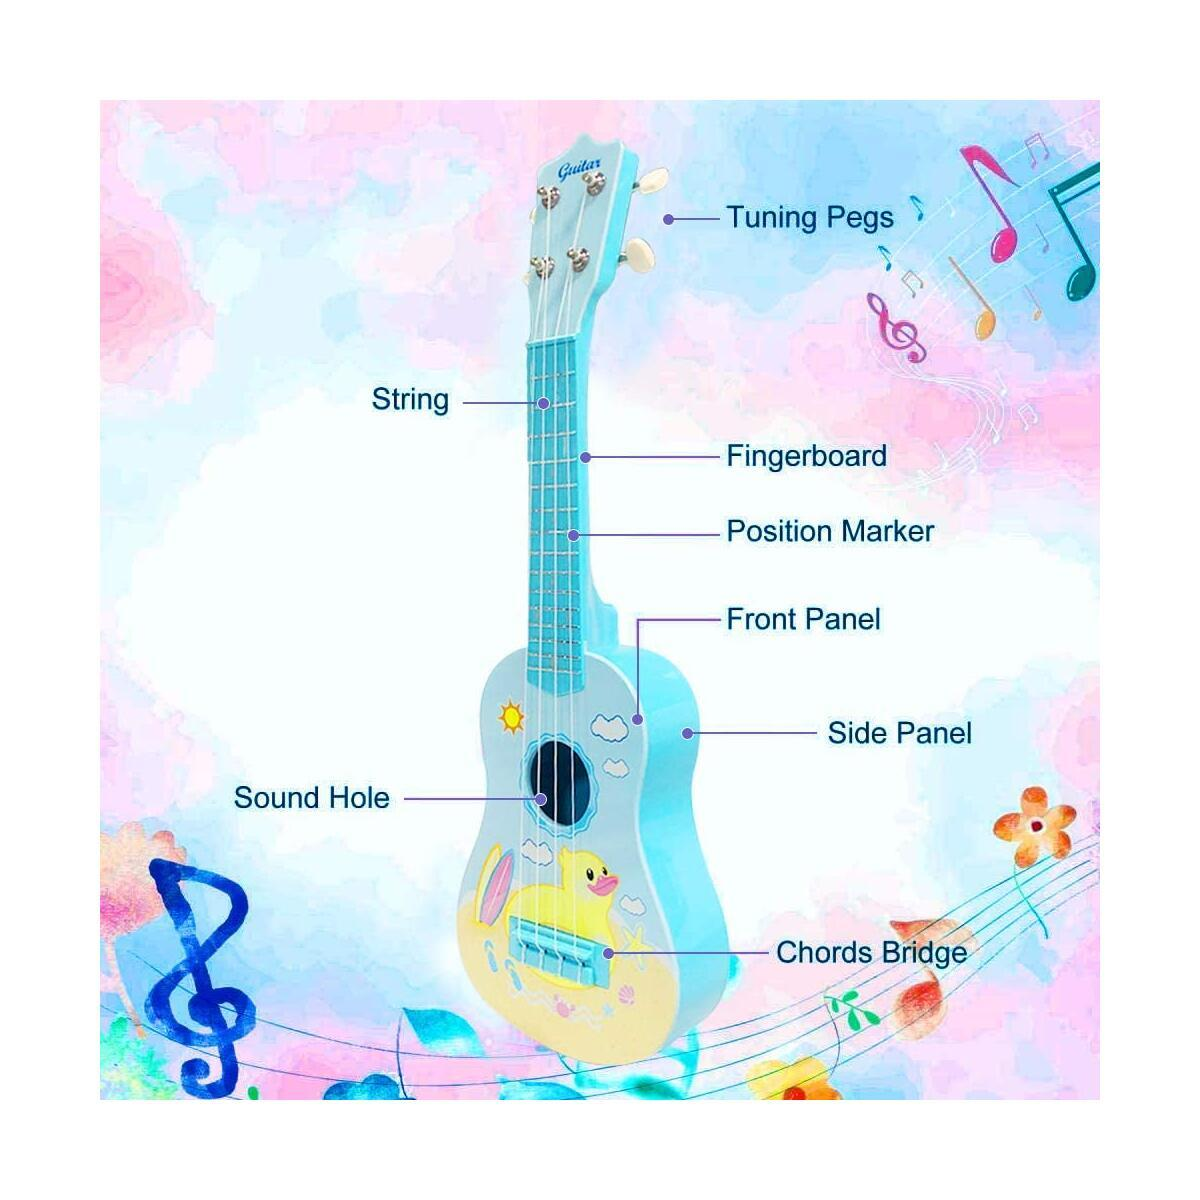 Musical Ukulele Guitar Toys 23 inches Blue Guitar with 4 Strings Musical Instruments Learning Educational Toys for Kids Children Adult Children